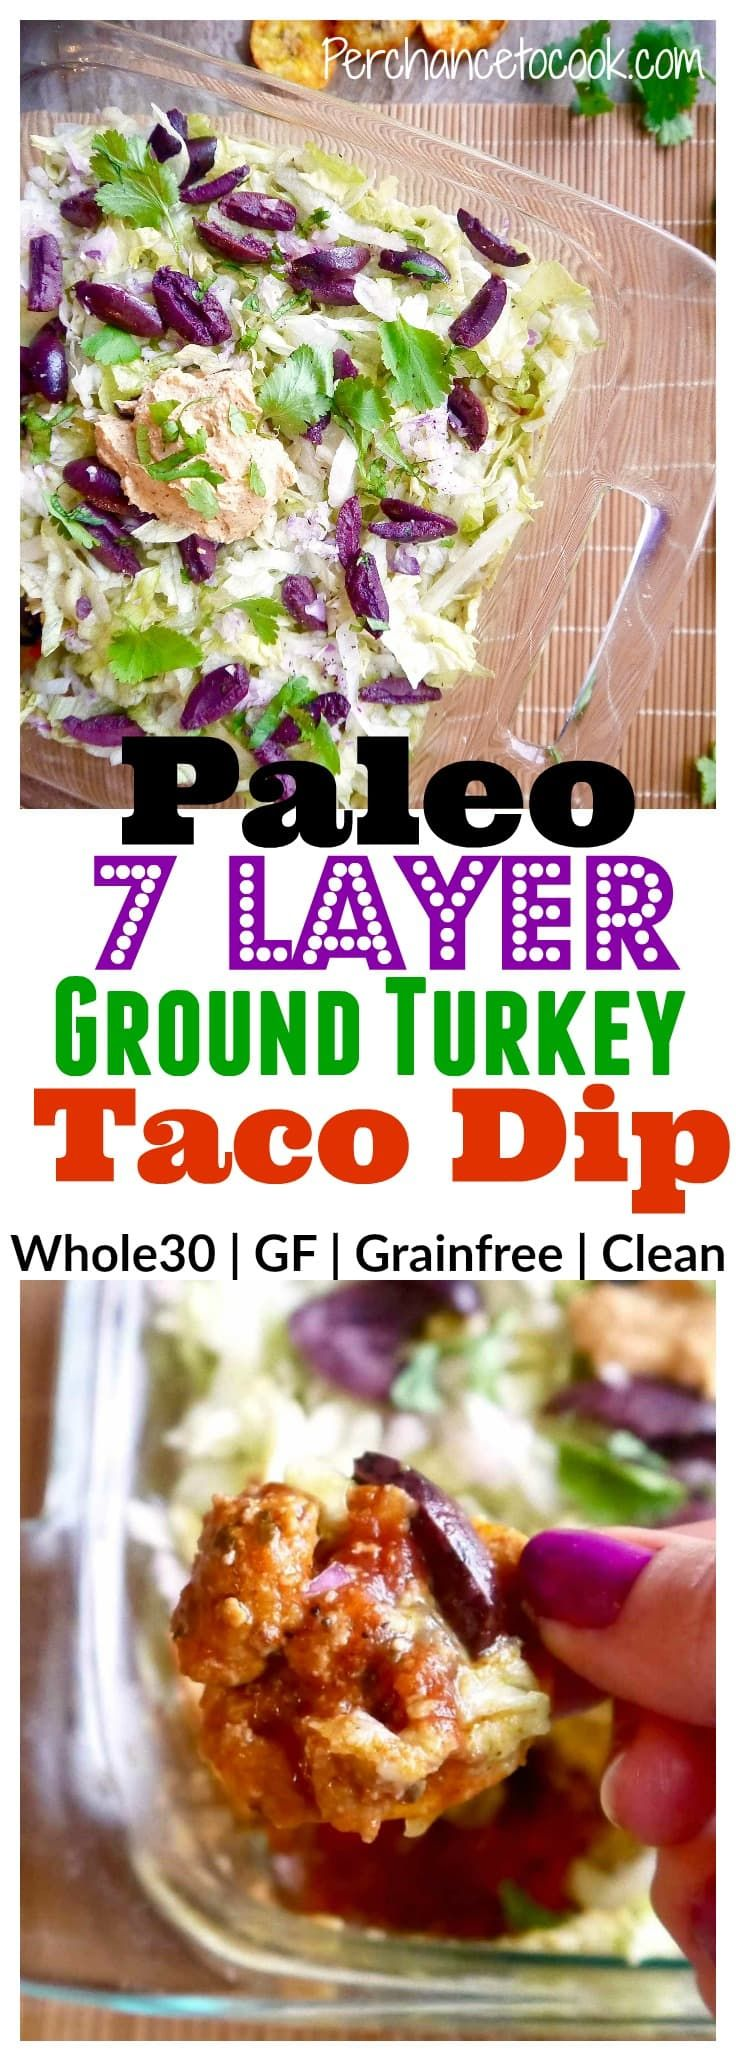 Paleo 7 Layer Ground Turkey Taco Dip (GF) | Perchance to Cook, www.perchancetocook.com